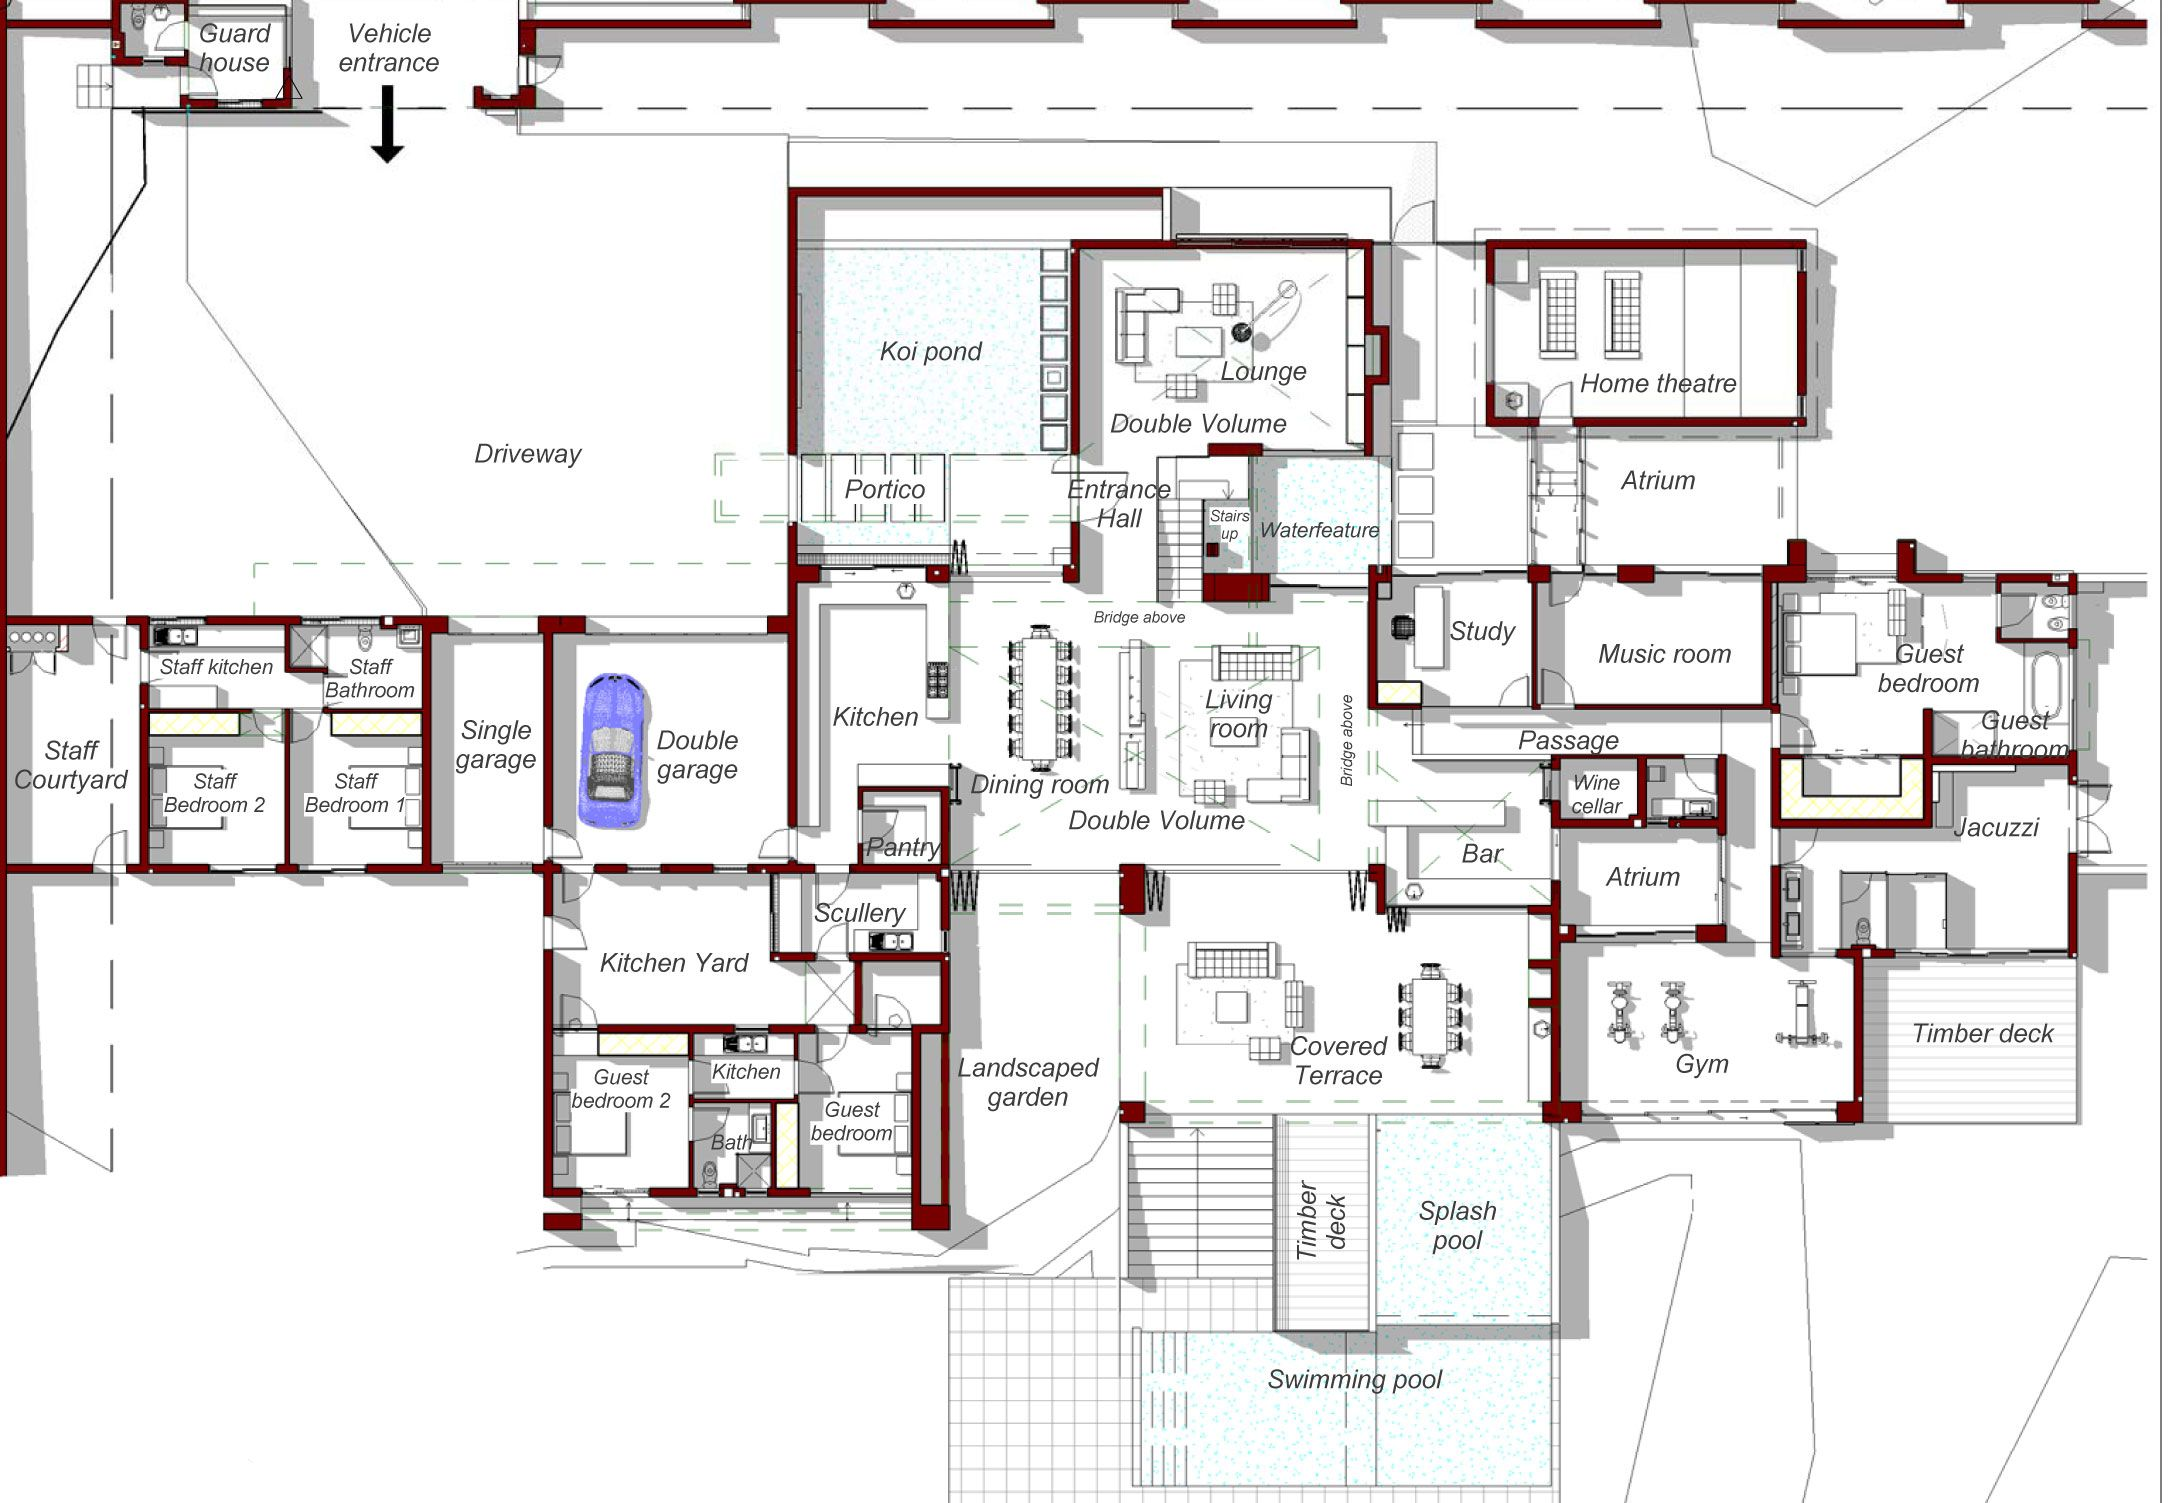 fantastic apartment complex blueprints. This fantastic estate is called House Sed and it can be found in the middle  of Bryanston Johannesburg Courtesy Nico van der Meulen Architects fi by 53 Entertainment